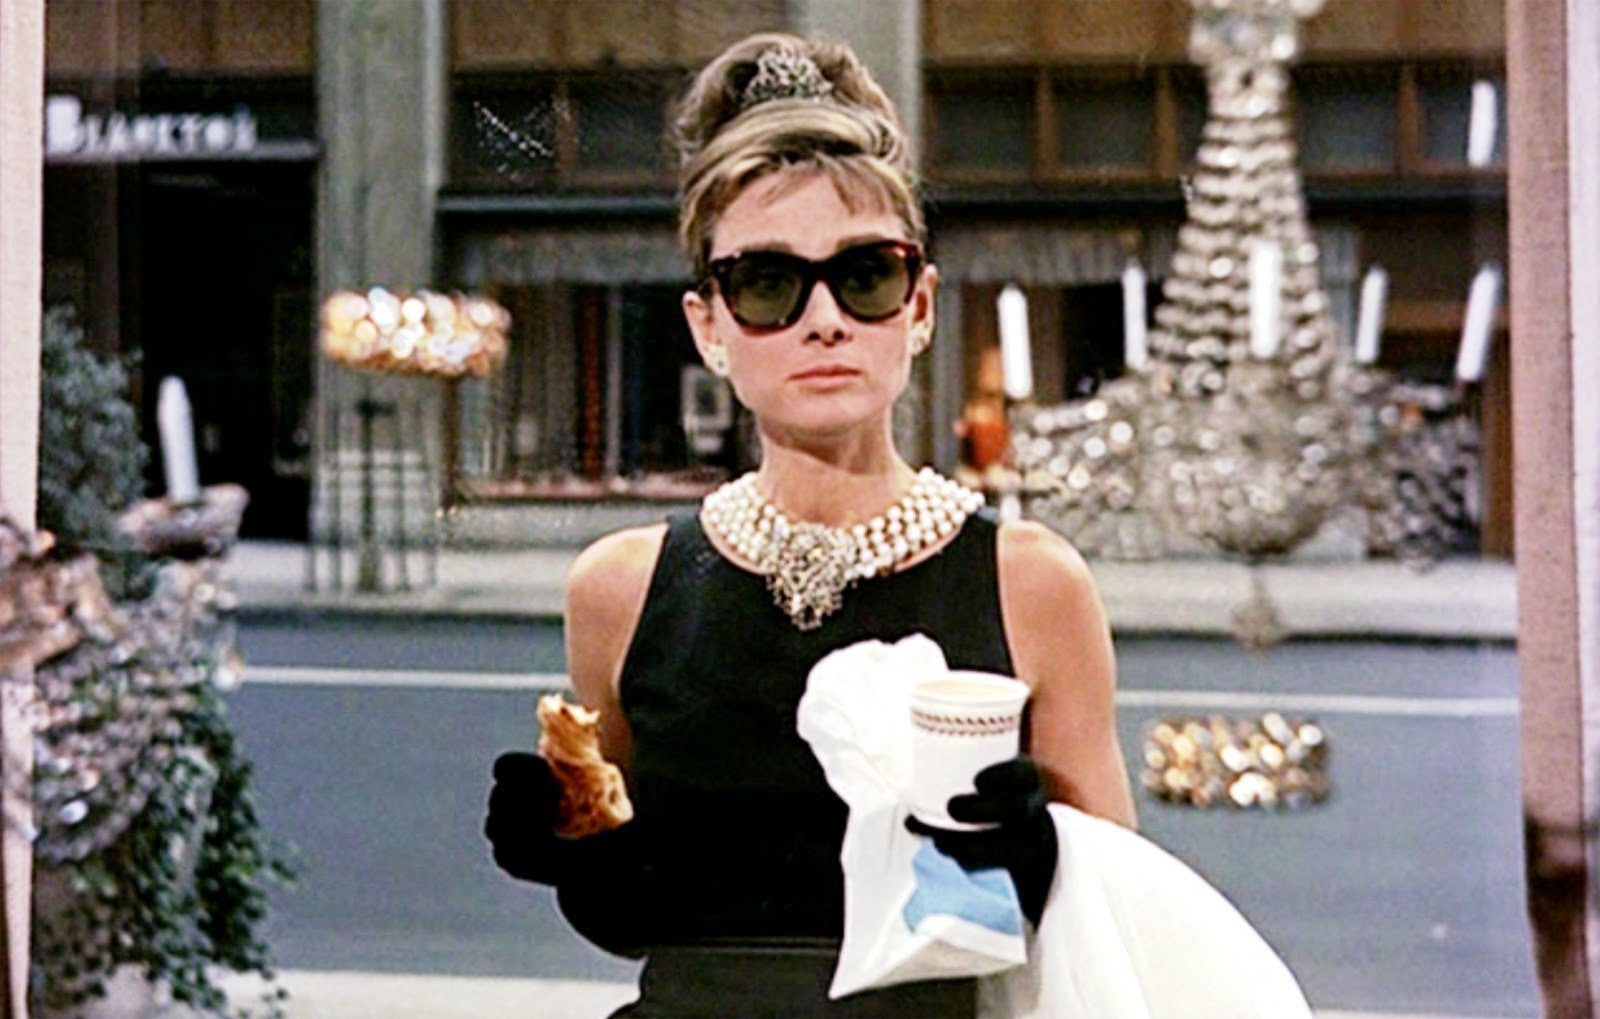 Consumers can finally have breakfast at Tiffany's